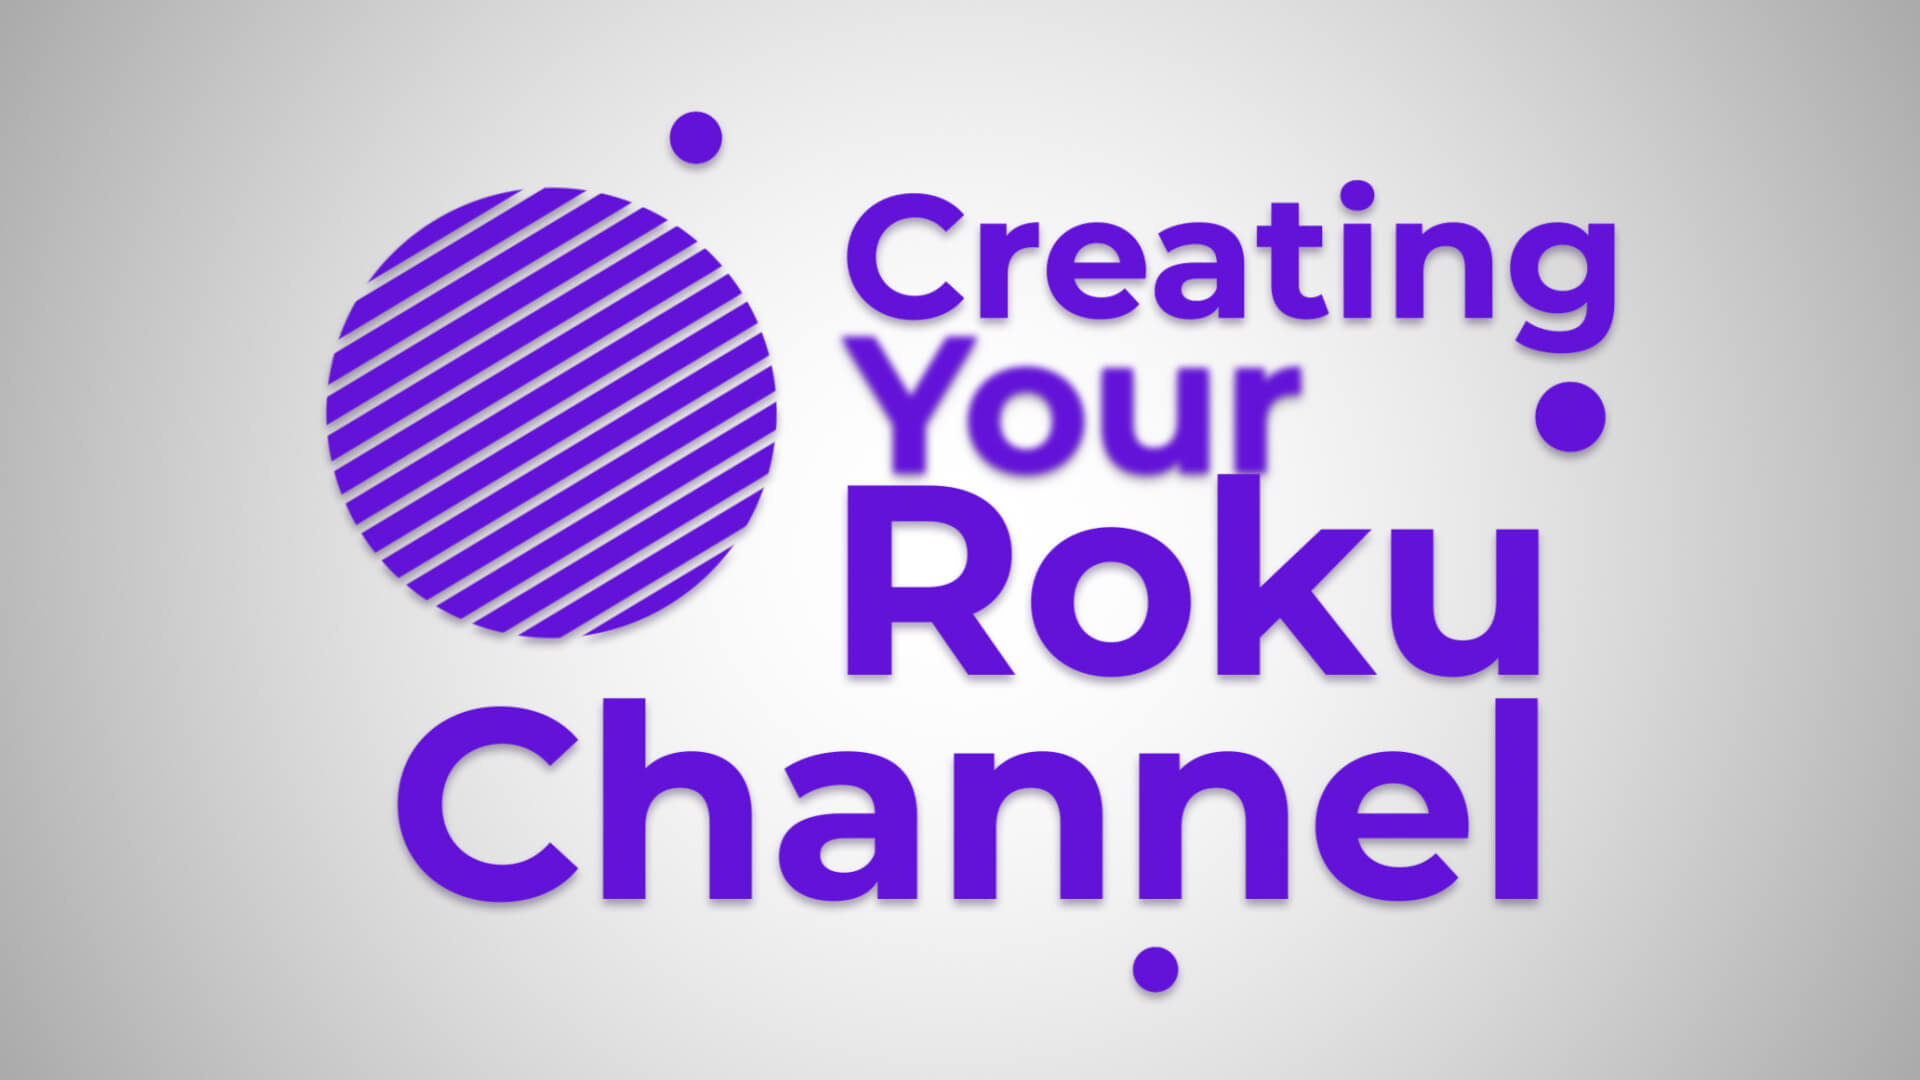 What we do when Creating Your Roku Channel